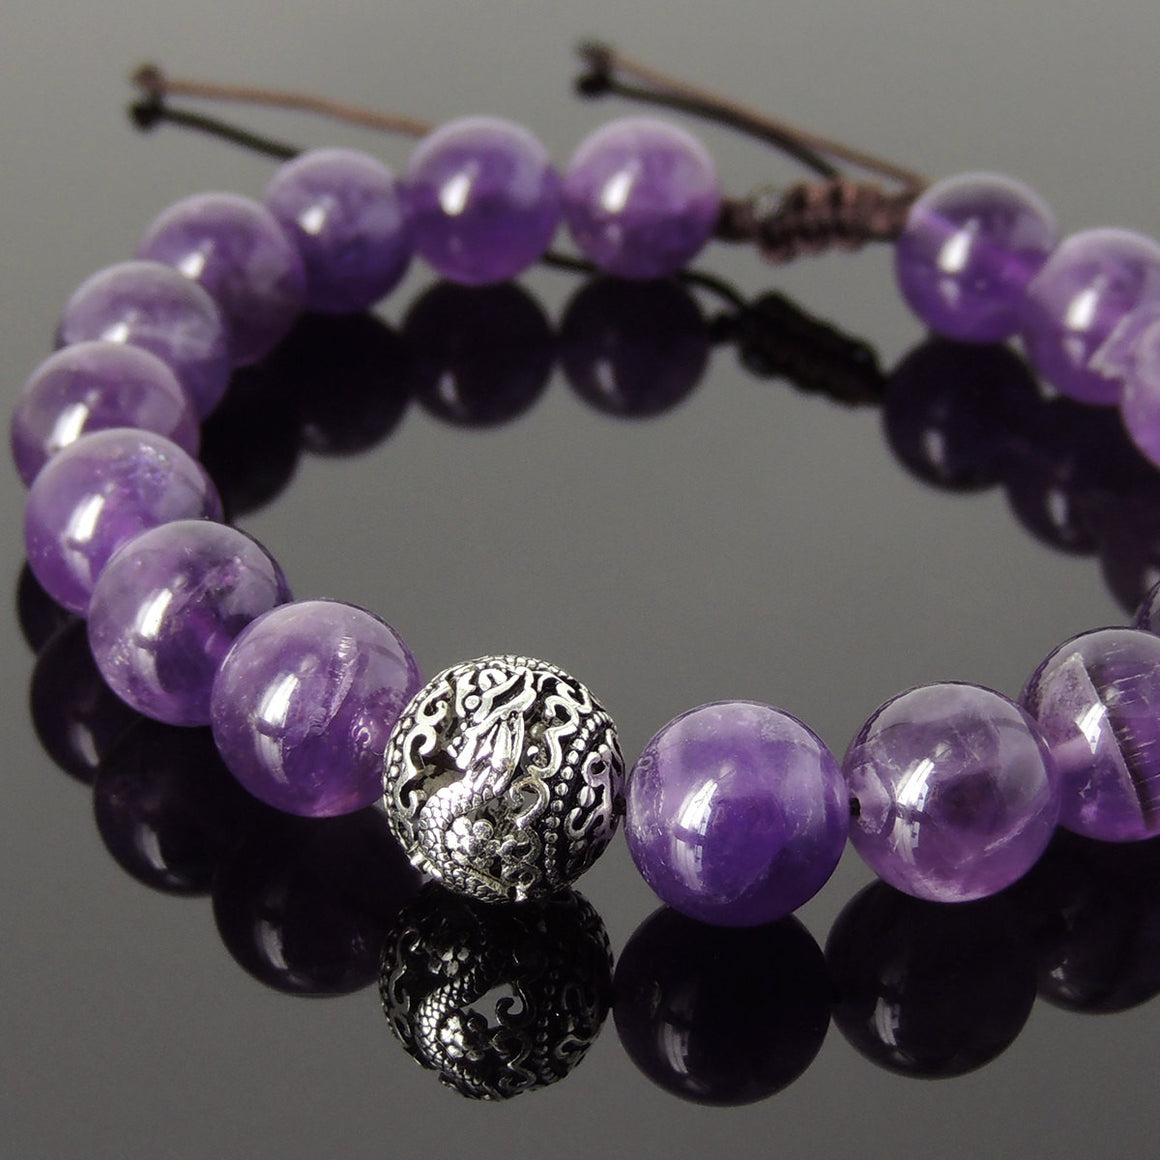 Amethyst Adjustable Braided Healing Gemstone Bracelet with S925 Sterling Silver Dragon Bead - Handmade by Gem & Silver BR921